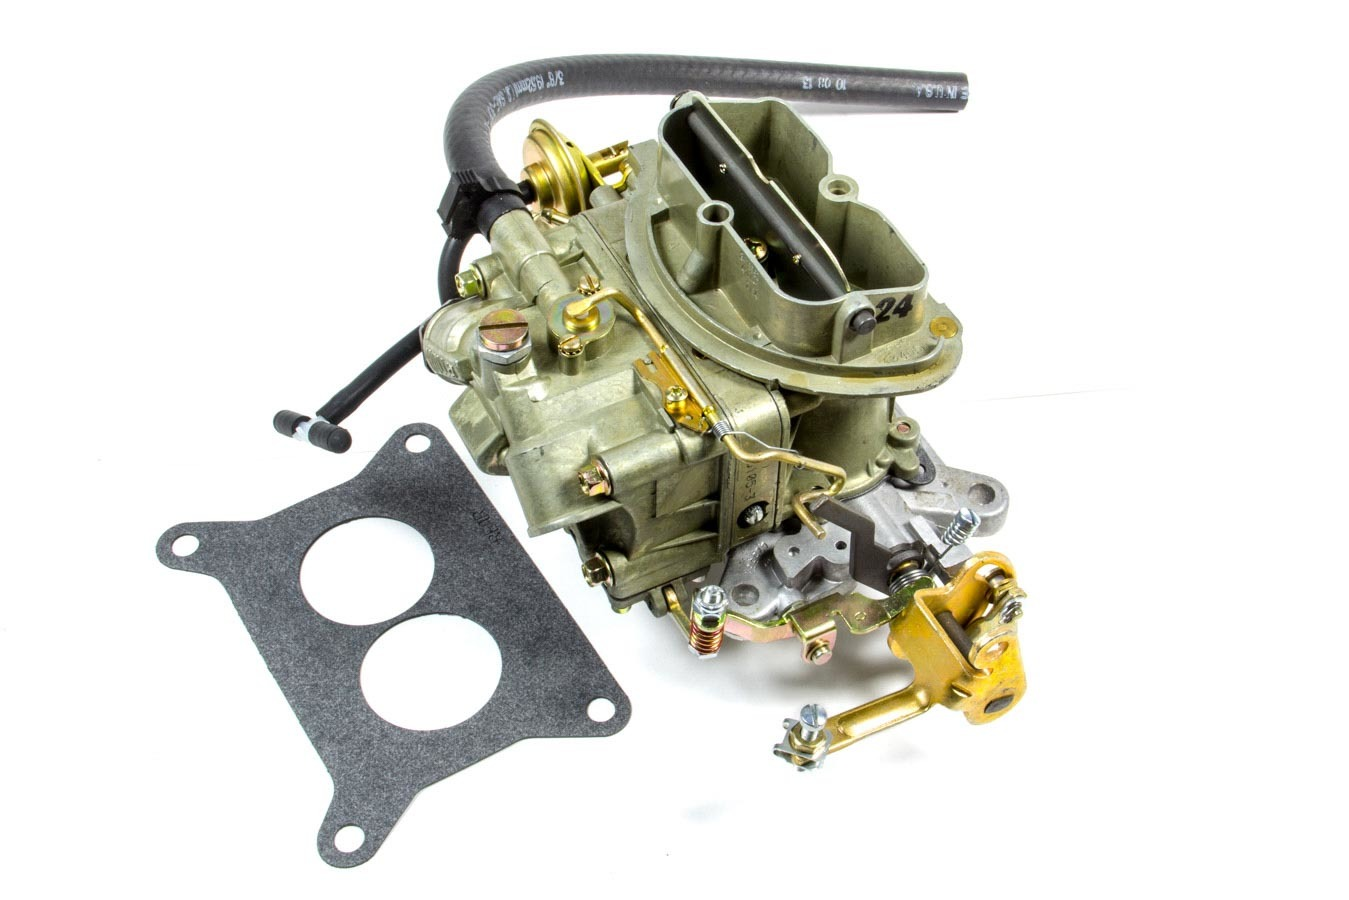 Holley 0-4144-1 Carburetor, OEM Muscle car, 2-Barrel, 350 CFM, Holley Flange, Remote Choke, Single Inlet, Chromate, Six Pack Center Carb, Each